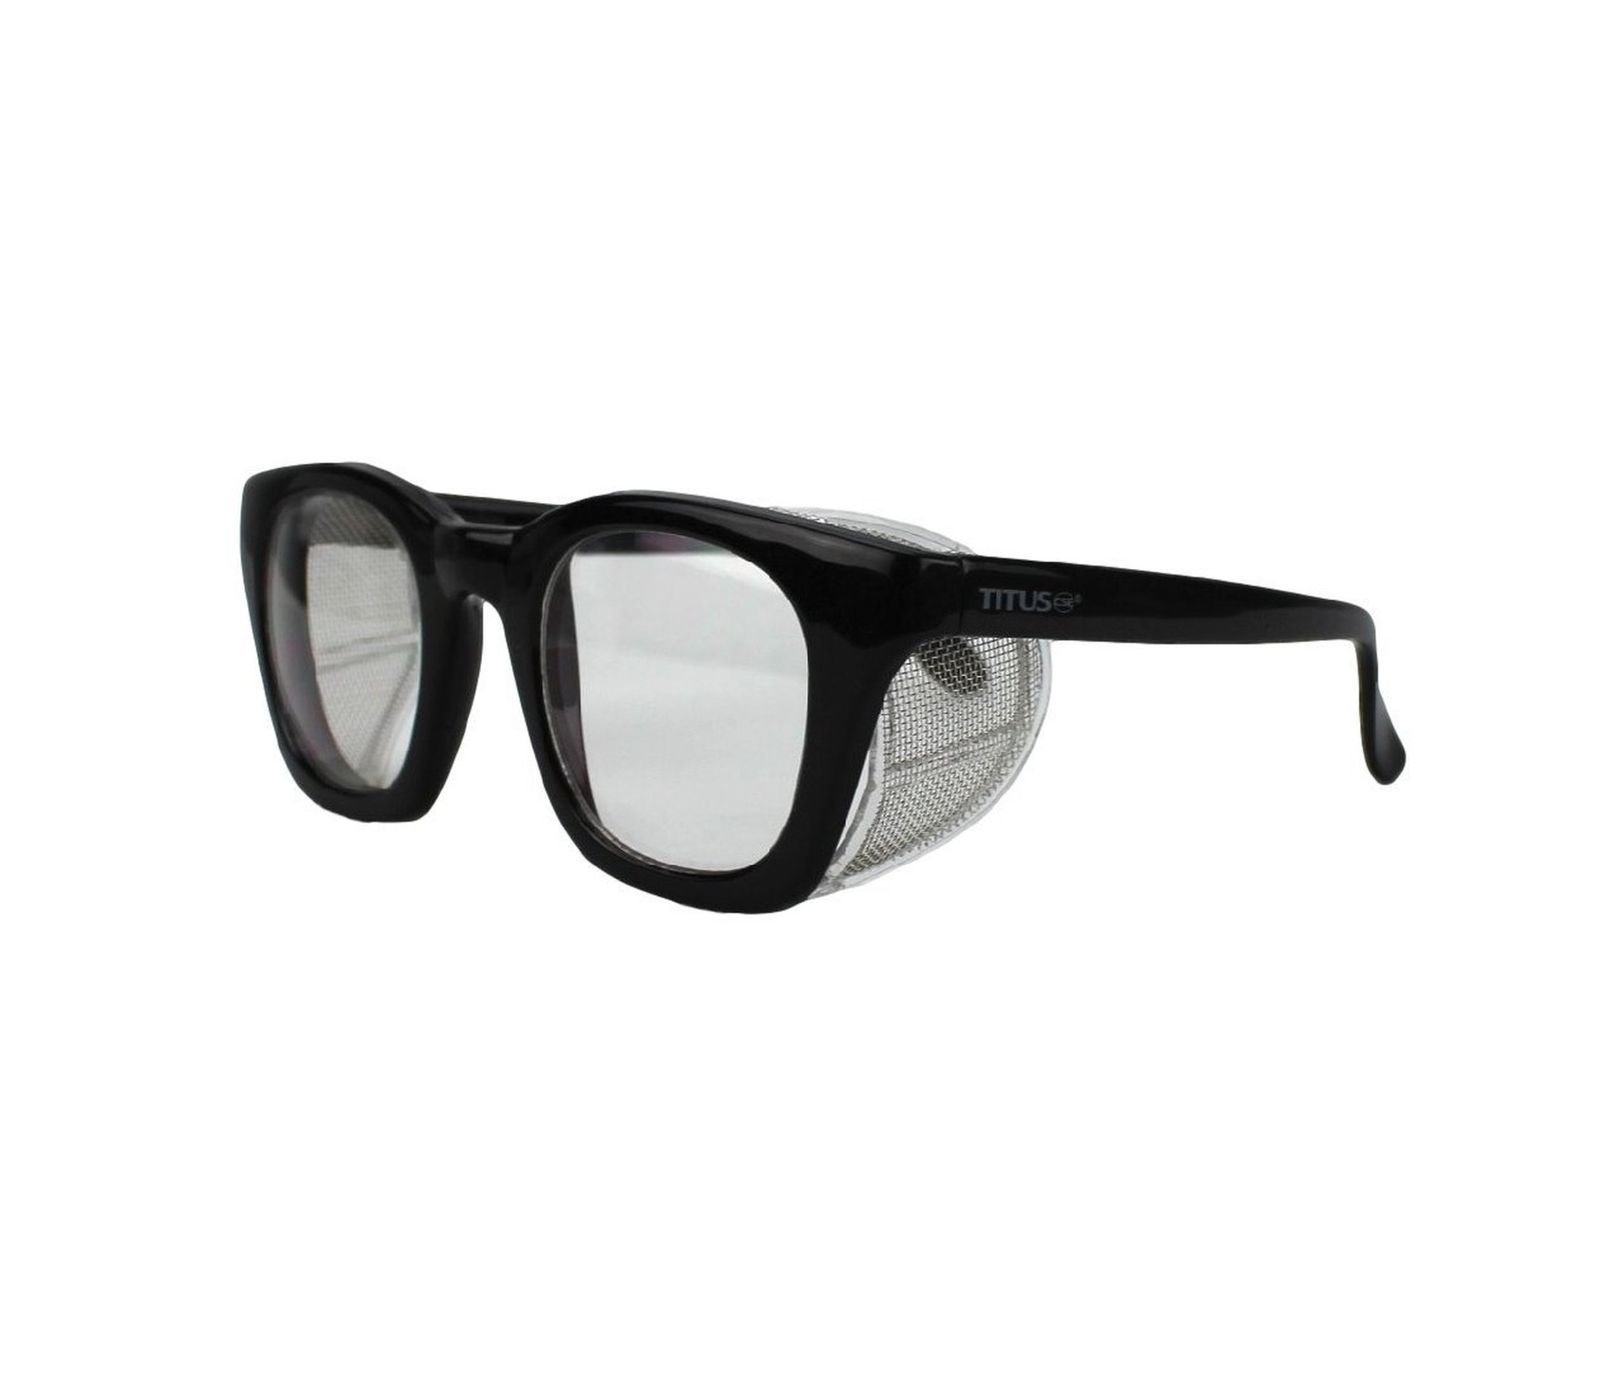 Retro Style Safety Glasses with Side Shield (w/o Pouch